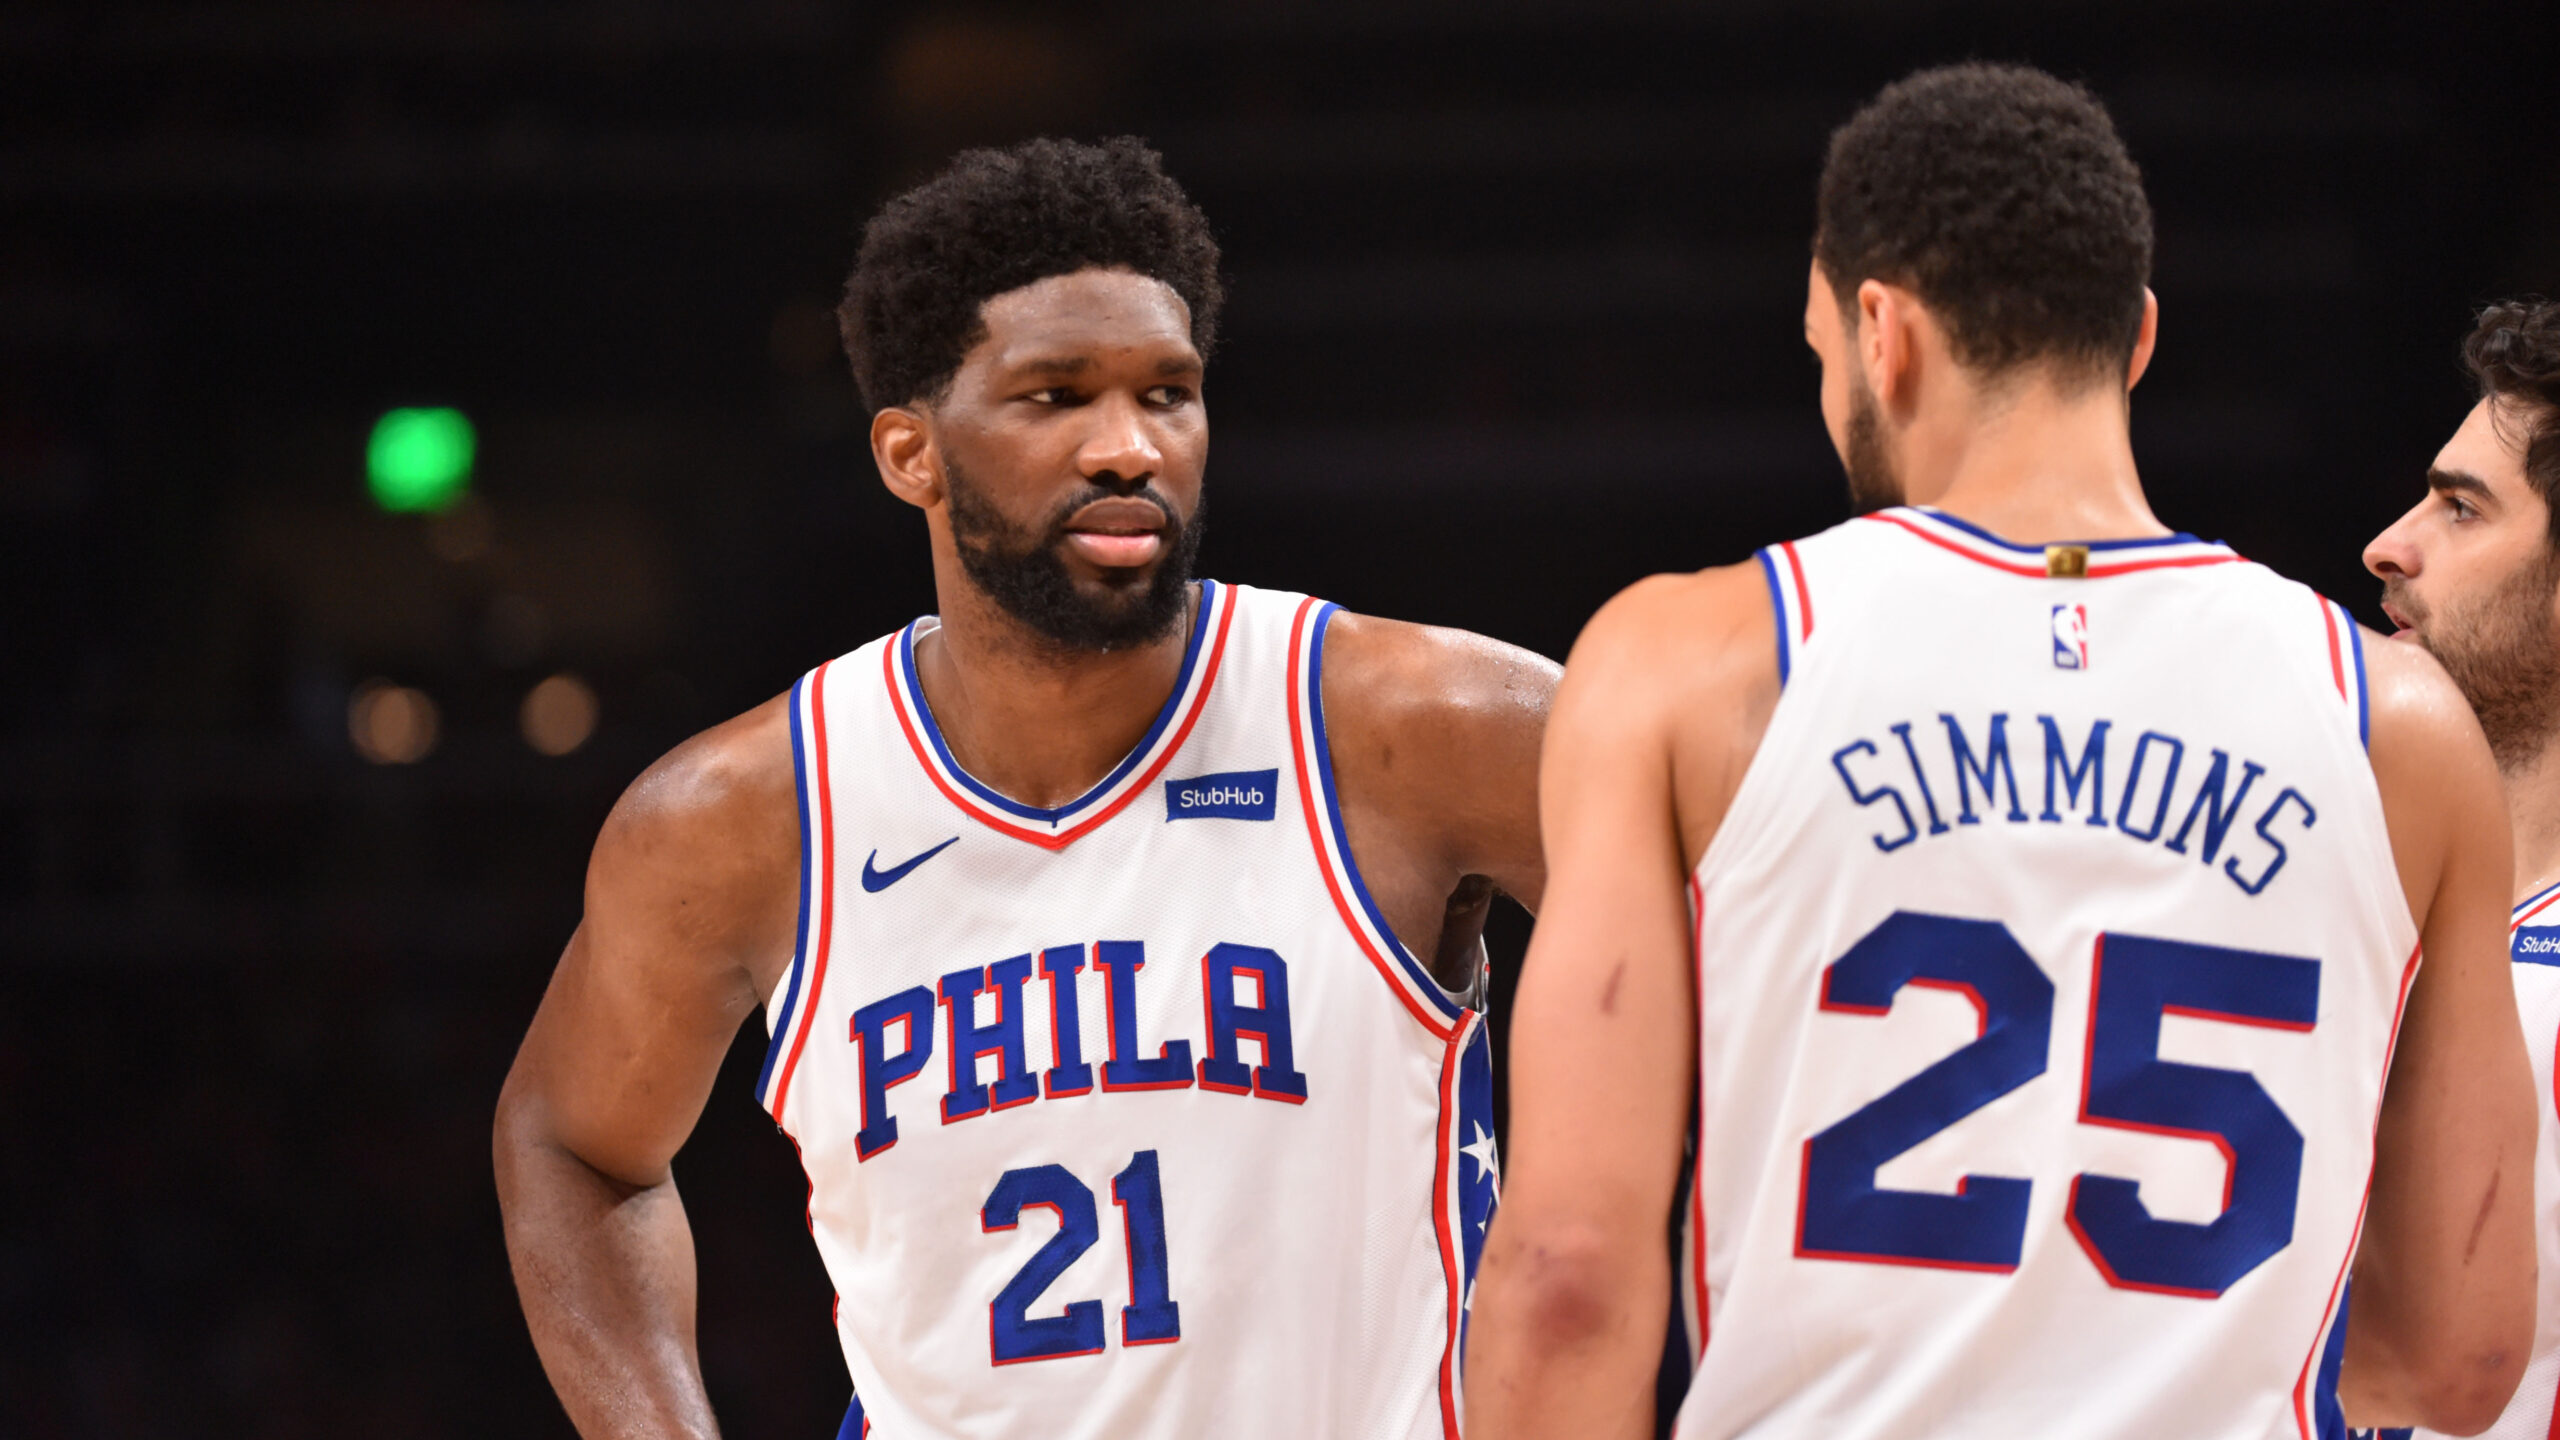 Embiid notes Simmons' lack of aggressiveness after Game 7